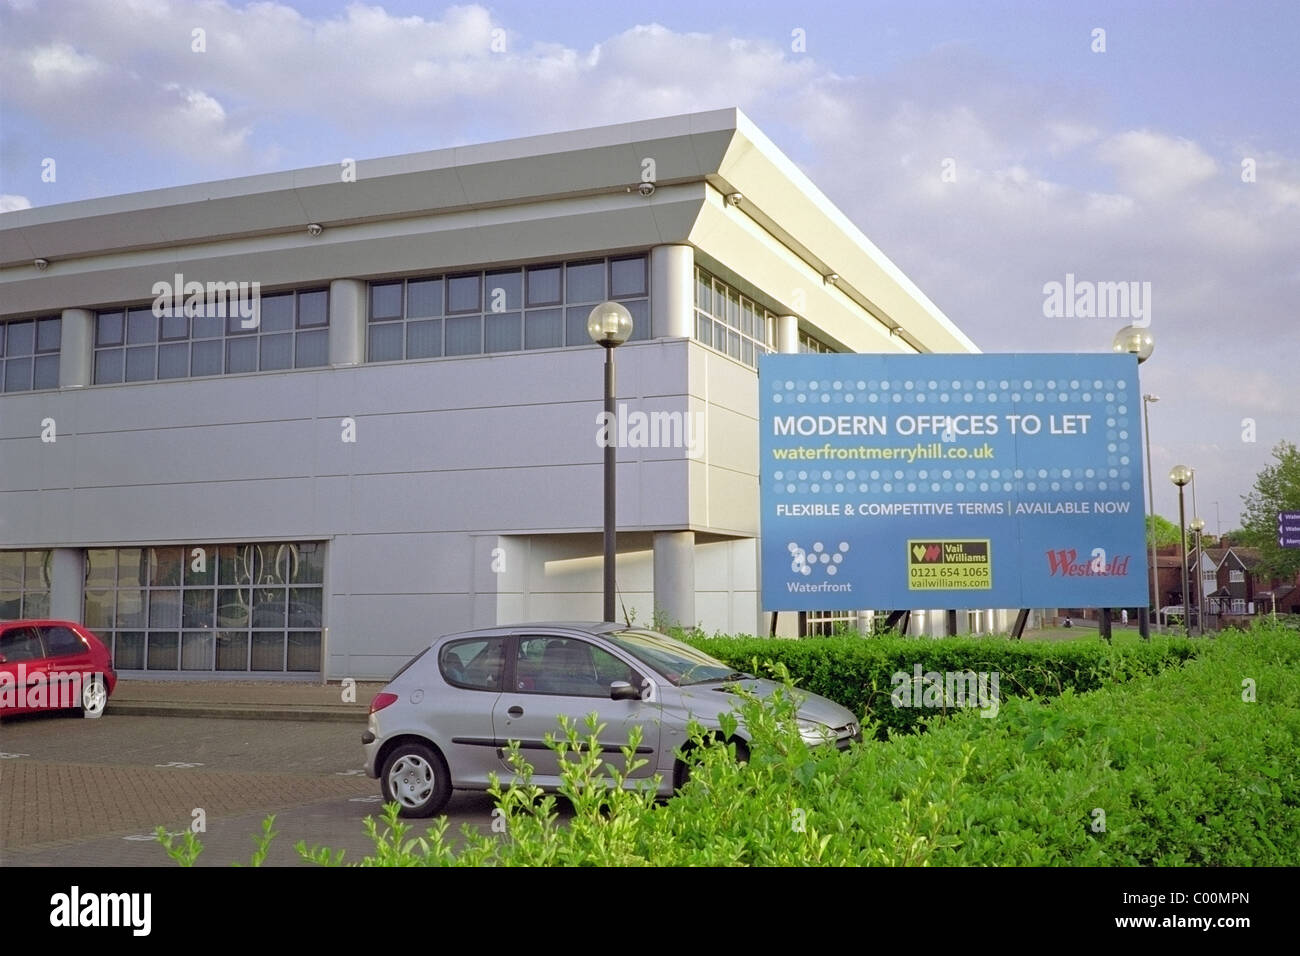 Modern Offices To Let With Sign and Car Parking, Waterfront Development, Brierley Hill, West Midlands, England, - Stock Image